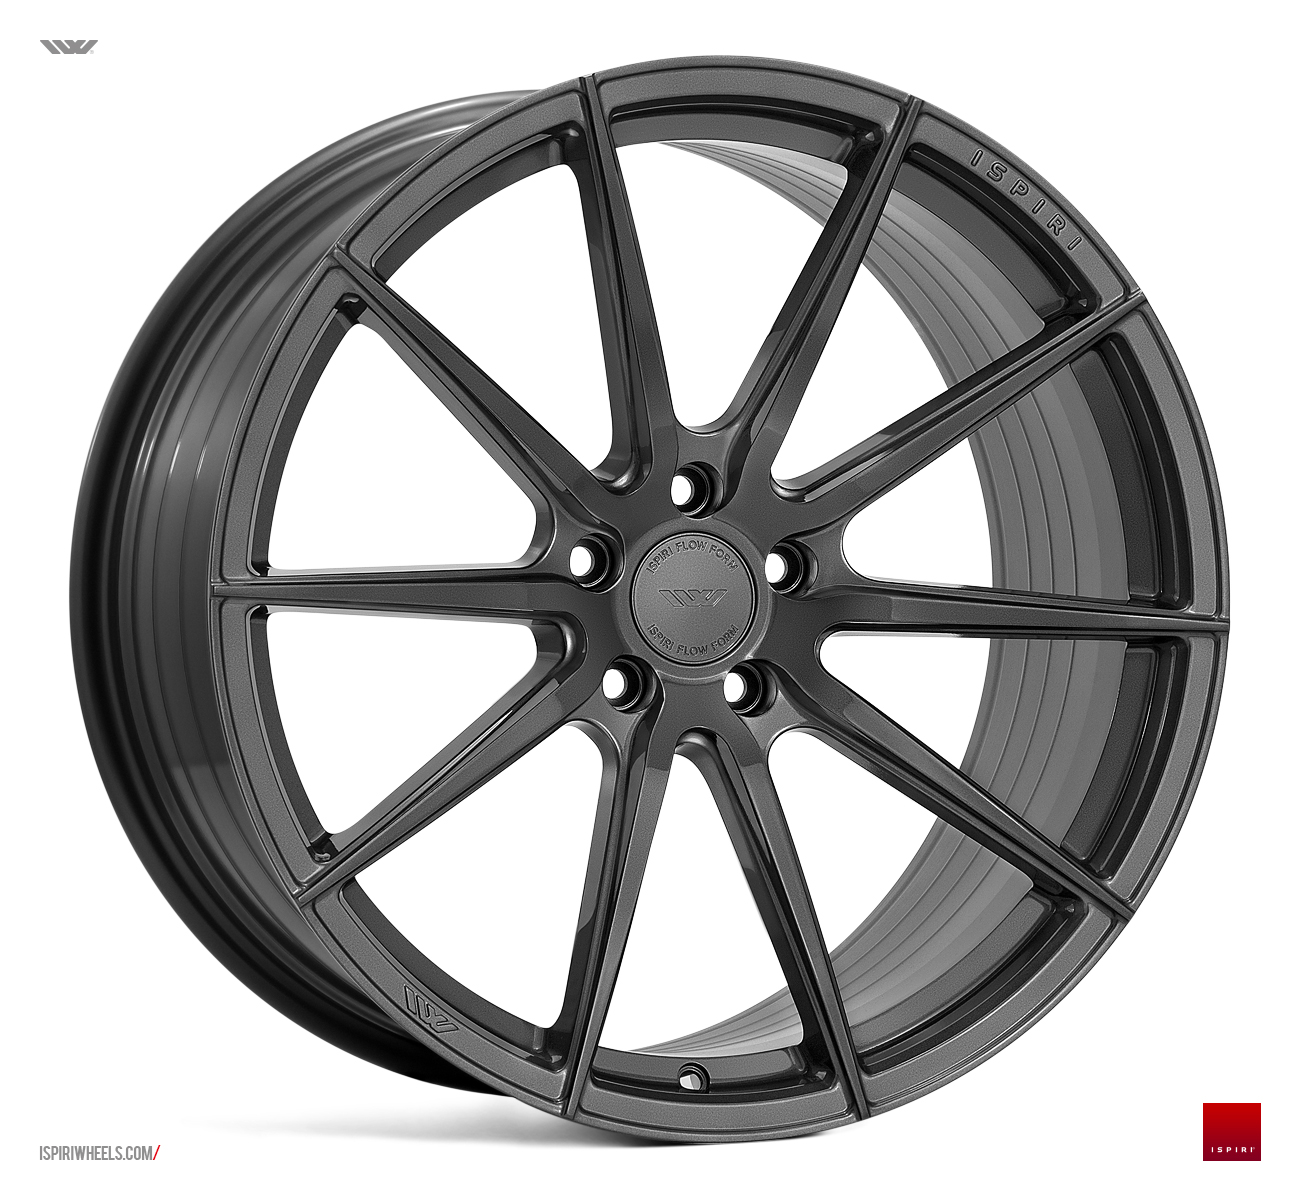 "NEW 20"" ISPIRI FFR1 MULTI-SPOKE ALLOY WHEELS IN CARBON GRAPHITE, DEEPER CONCAVE 10.5"" REARS"